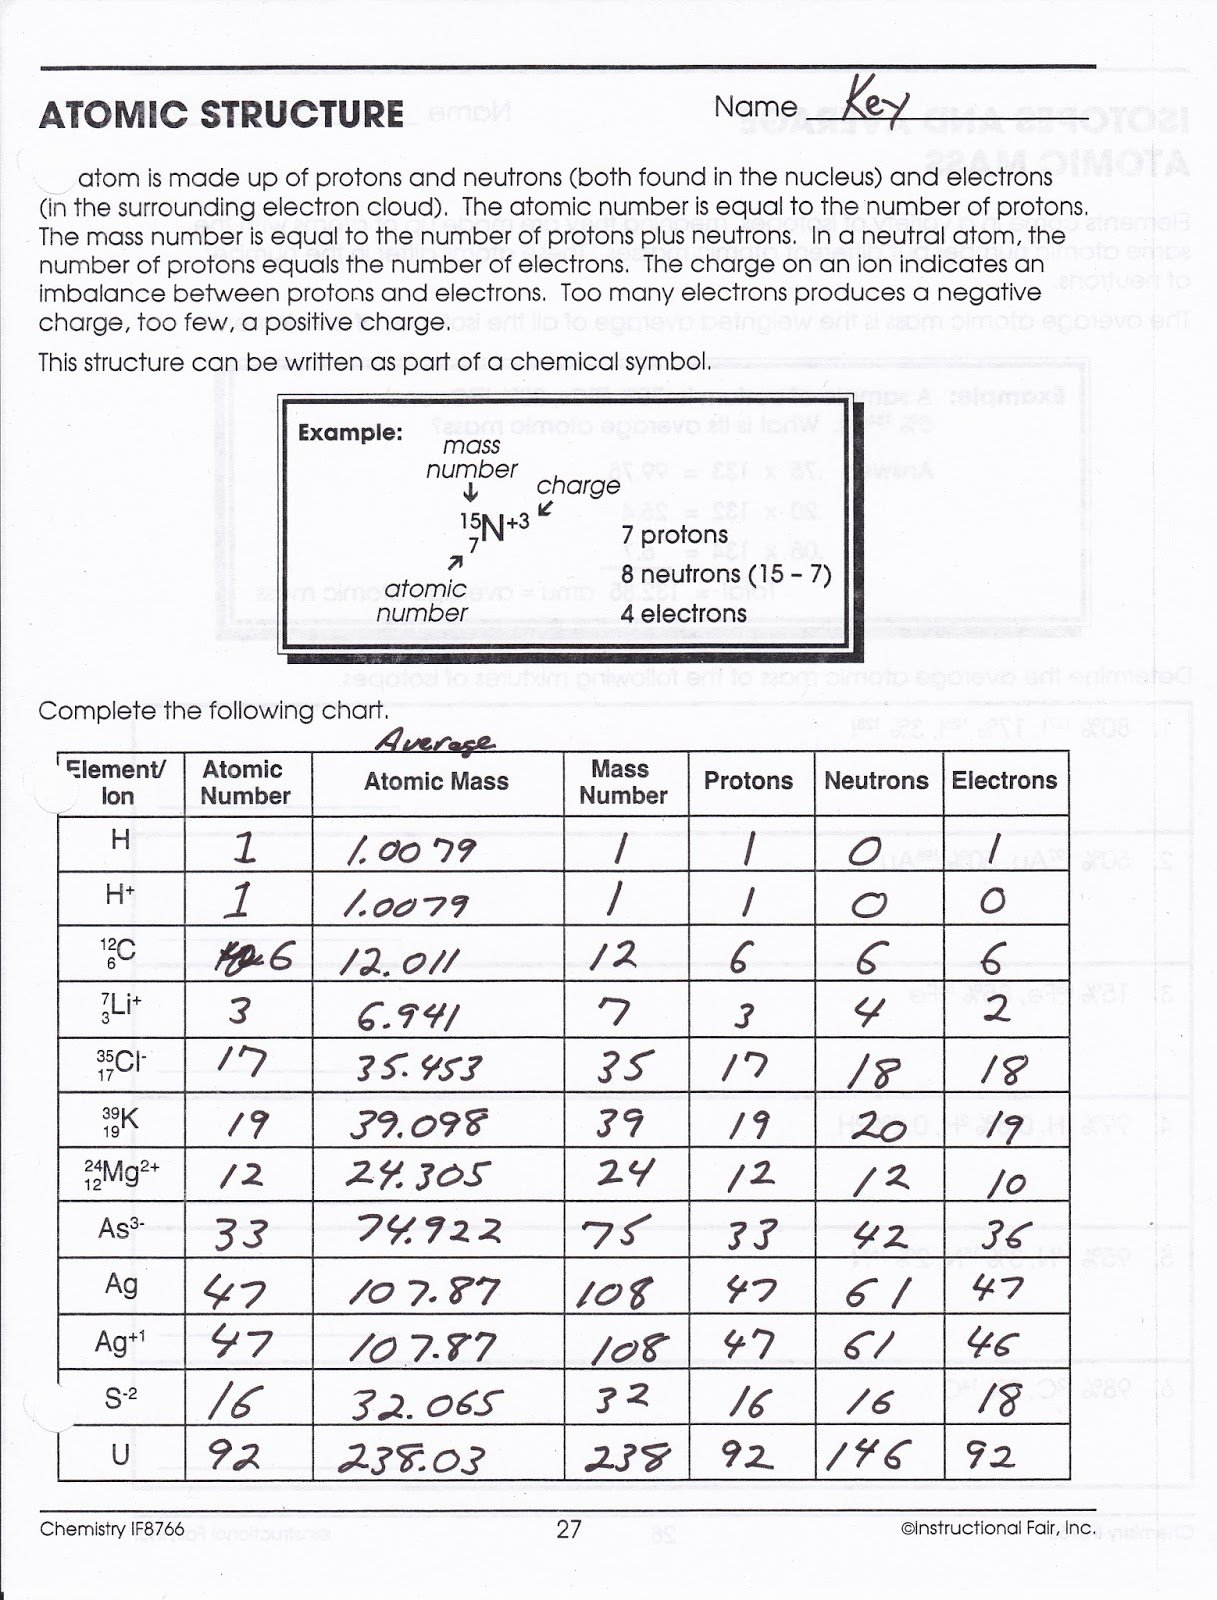 Atomic Structure Review Worksheet Answer Key + My PDF ...